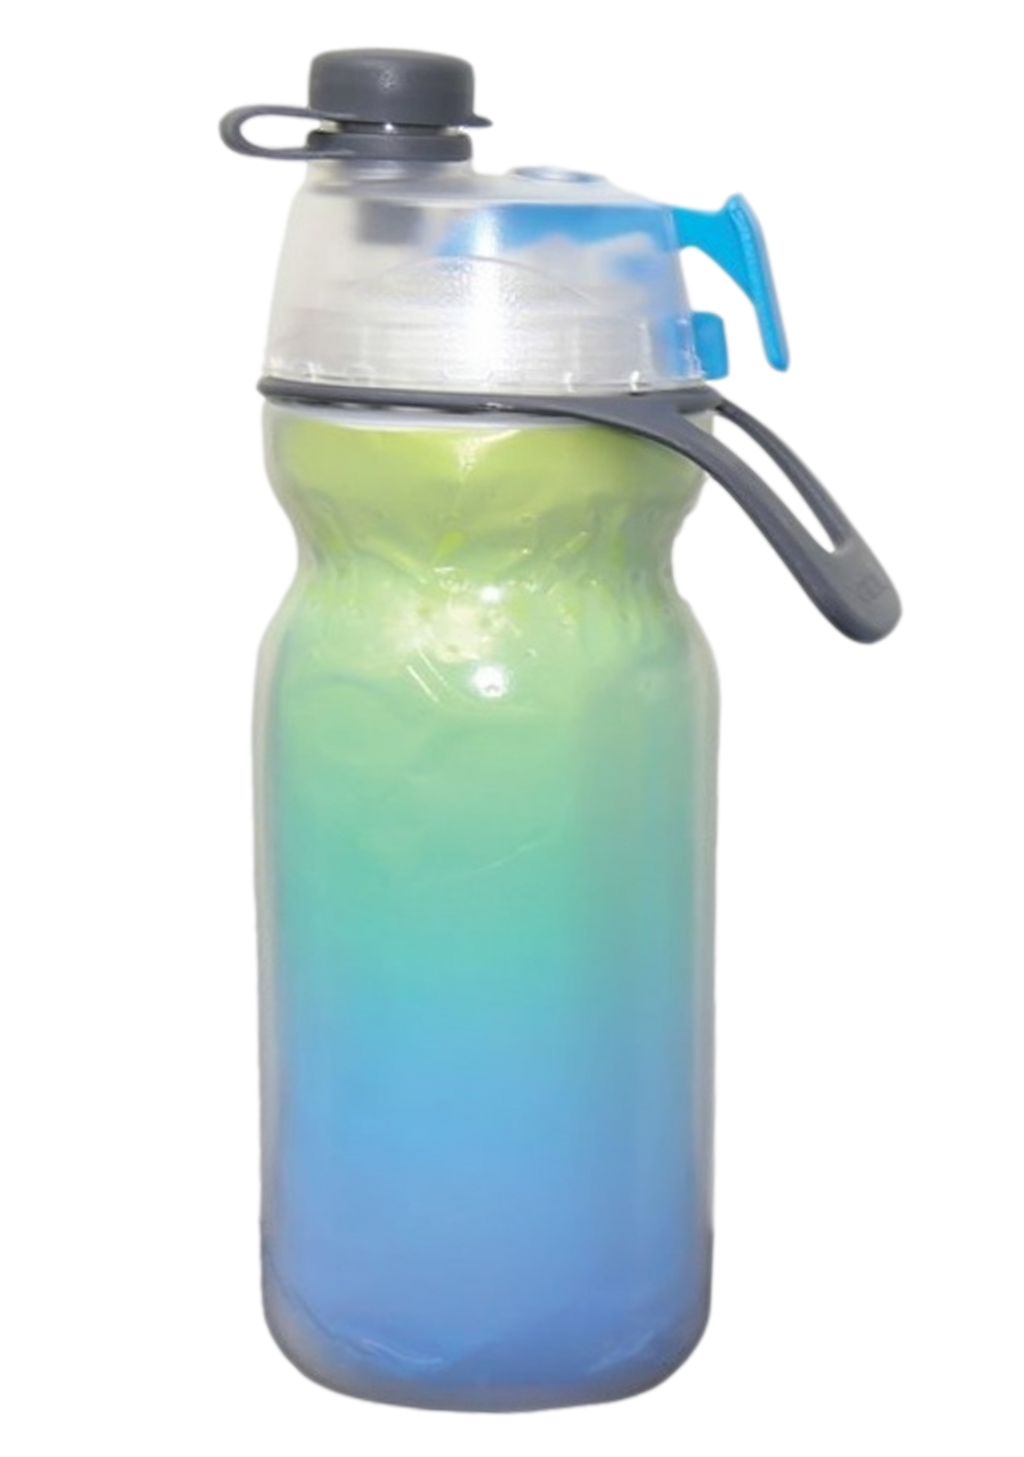 O2 COOL MIST N SIP INSULATED WATER BOTTLE 590ML <BR> HMLDPA1 GREEN BLUE FADE